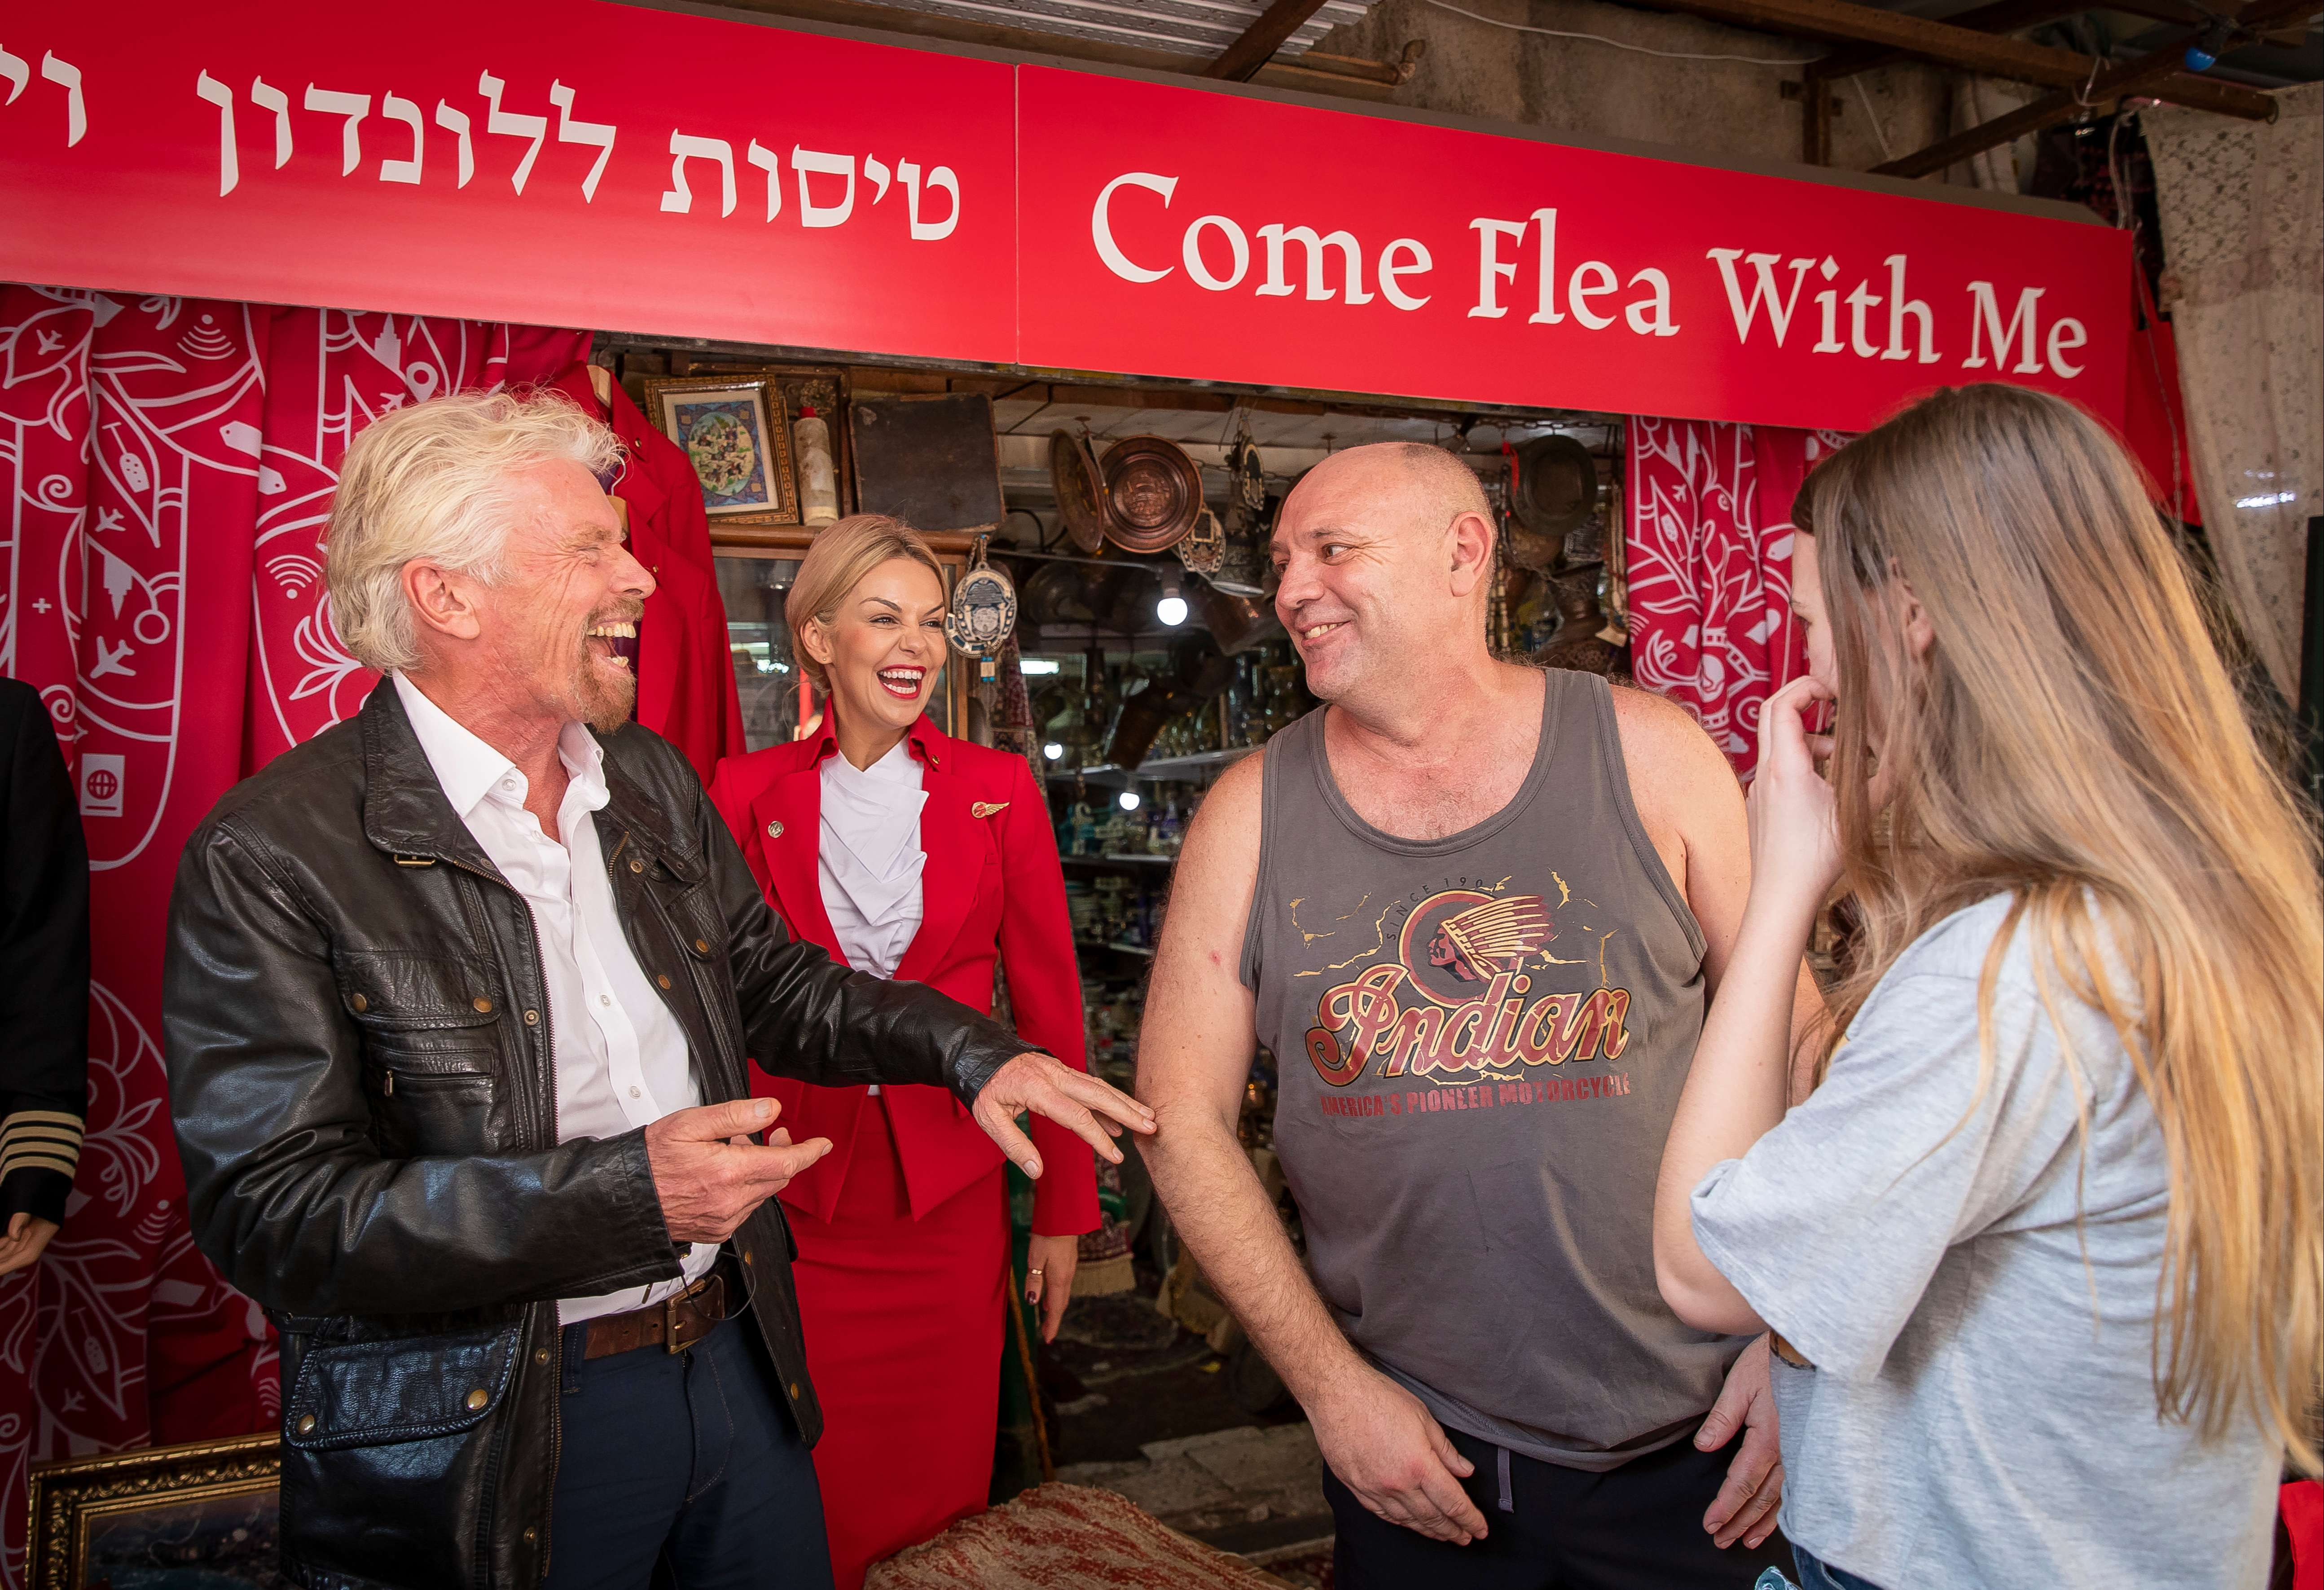 To celebrate Virgin Atlantic's inaugural flight to Tel Aviv, Virgin founder and international Businessman Sir Richard Branson operates a pop-up travel agency in the middle of the city's famous Jaffa Market The Secret Travel Agent initiative celebrates  Tel Aviv's social practice of haggling as its residents negotiate with this business giant for flights to London Sir Richard also threw in additional items such as flight bags and Virgin Atlantic merchandise to tempt his customers to make a deal, mirroring Virgin Atlantic's ethos of maximising customer experience with added extras The twist is Sir Richard will be giving away a limited number of flights to London for those who are the fiercest negotiators.